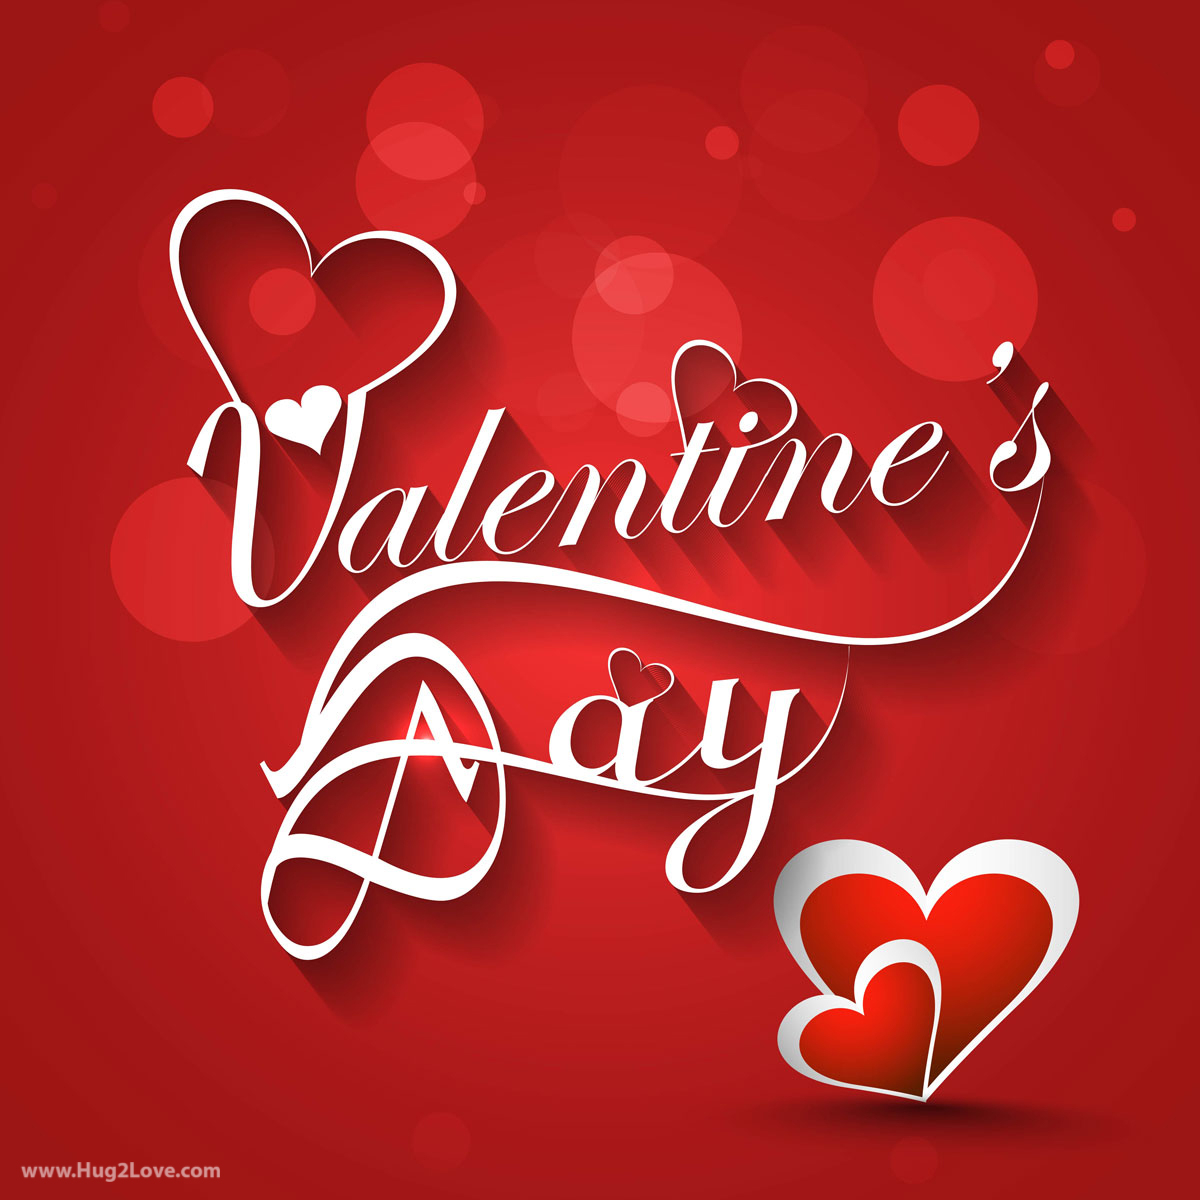 100 Happy Valentines Day and Wallpapers 2020